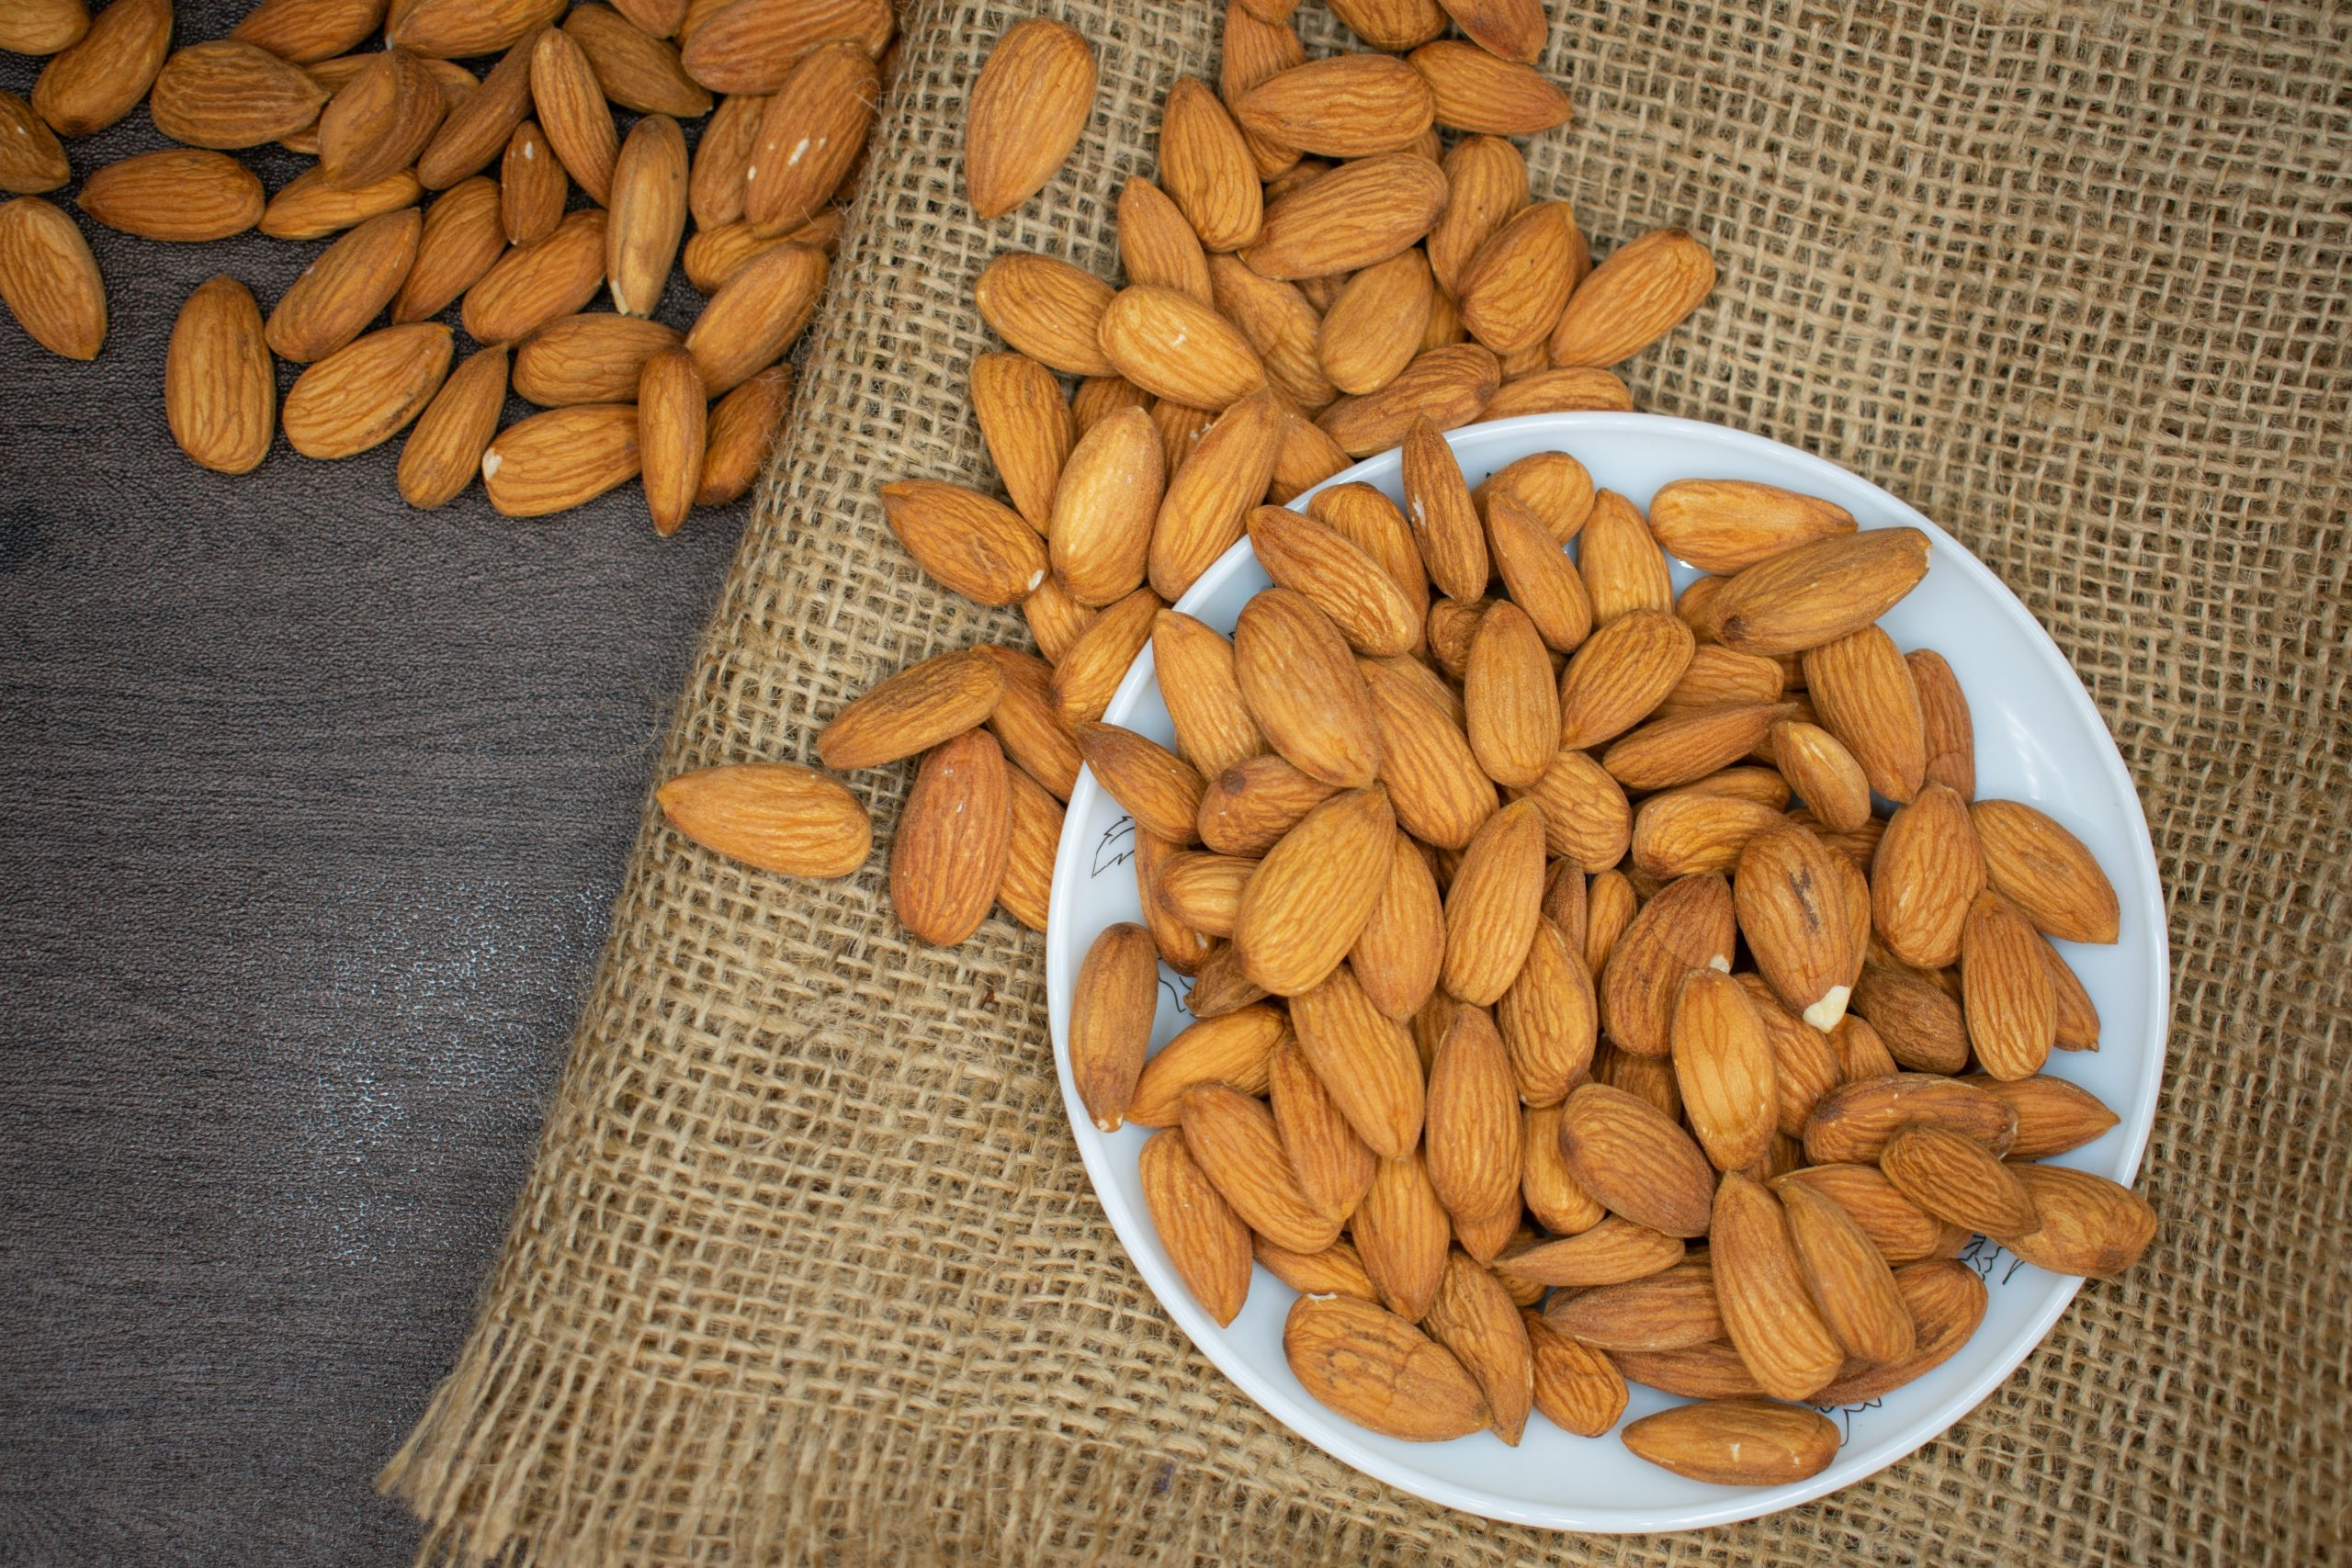 #7 Stress-busting food: Almonds. Photo byKafeel AhmedfromPexels